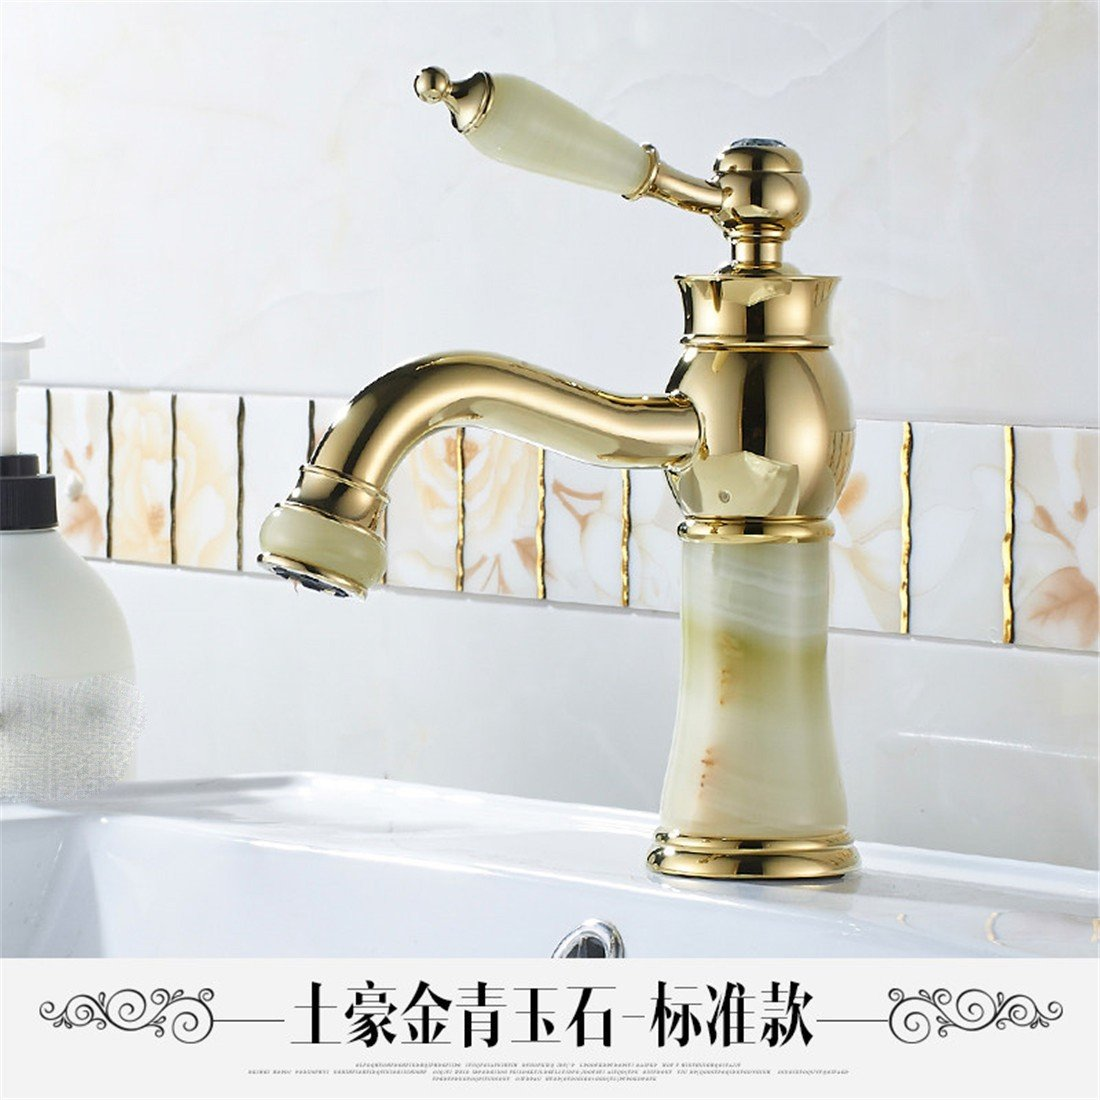 The gold Green Jade 3 Hlluya Professional Sink Mixer Tap Kitchen Faucet The Jade faucet marble washbasins pink gold basin full copper golden basin of hot and cold taps, God light blond white jade